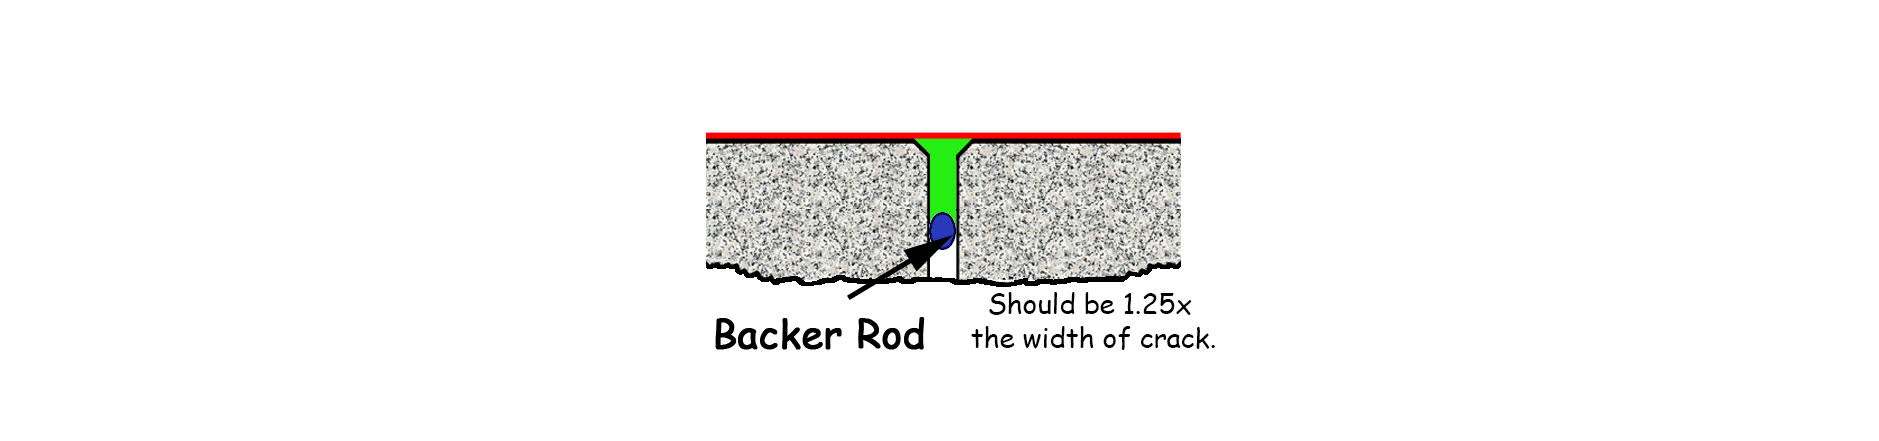 backer-rod.jpg